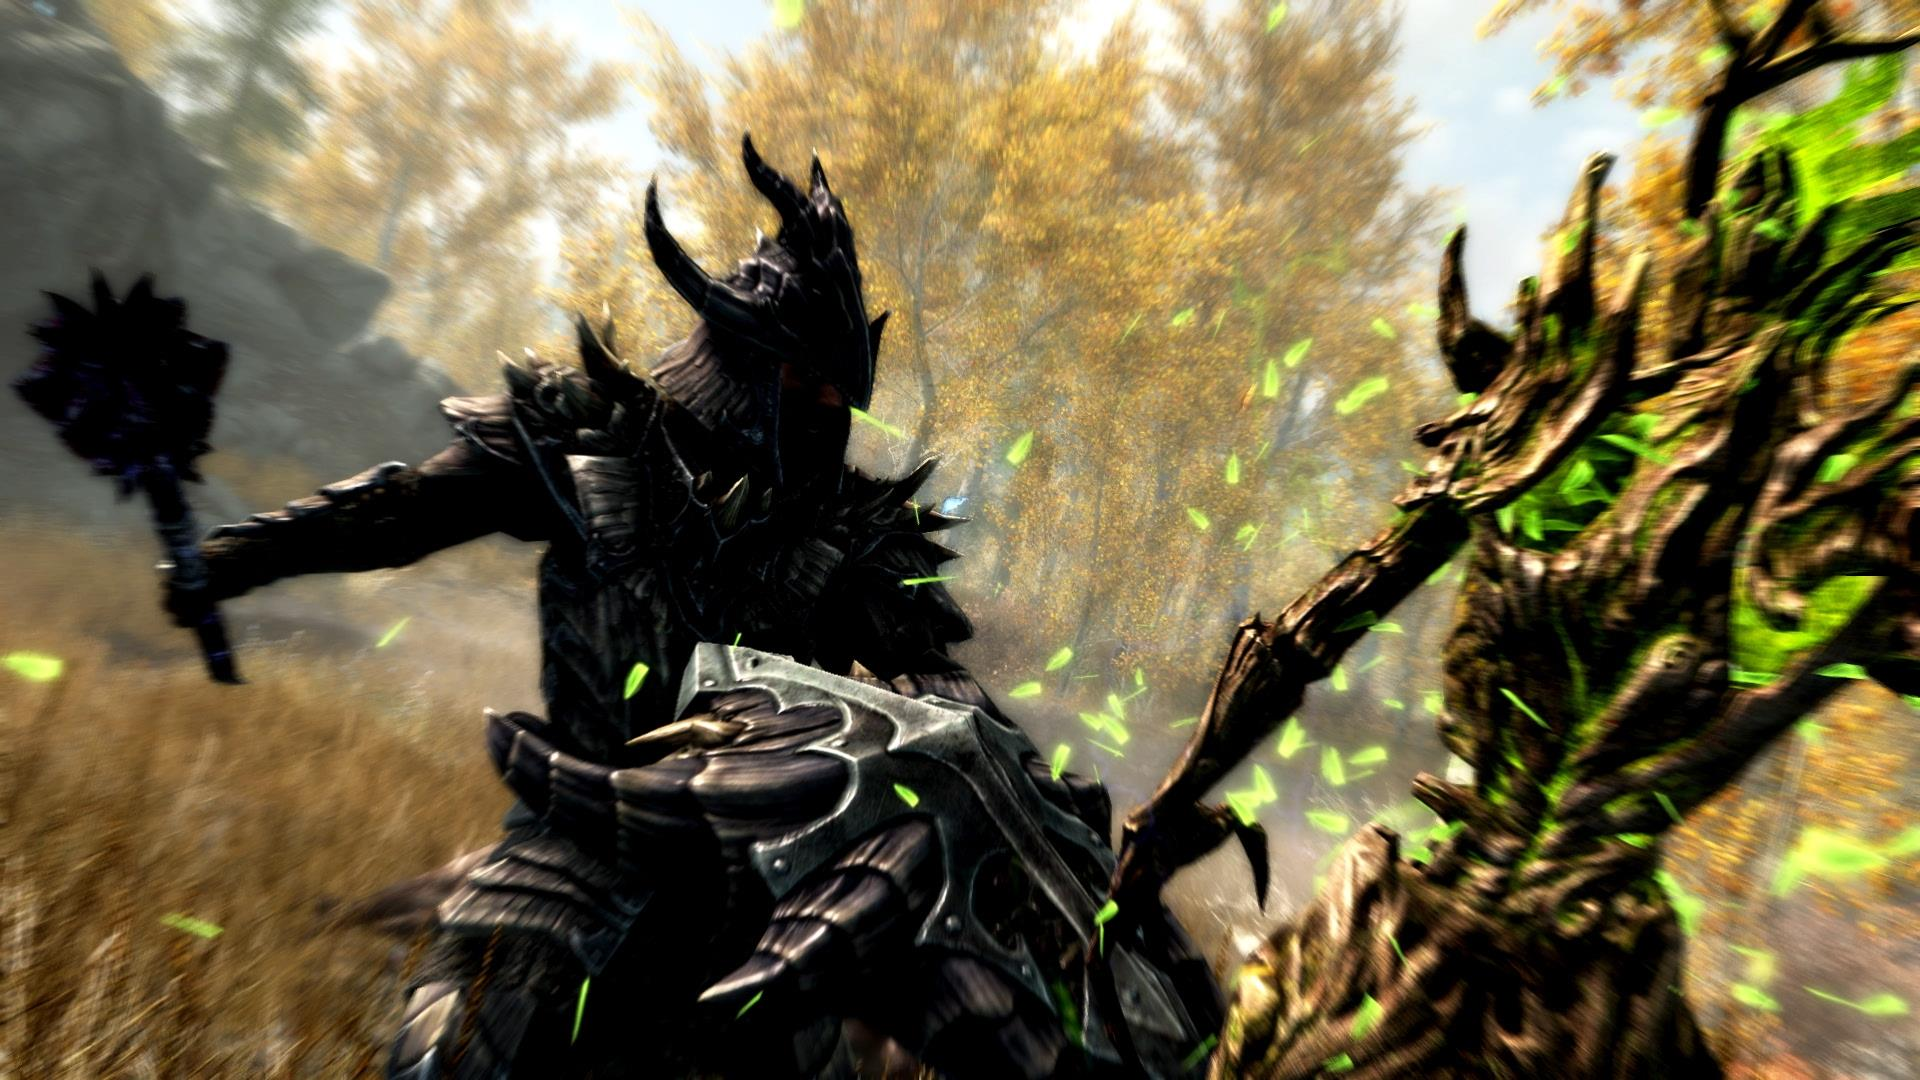 The best mods for Skyrim Special Edition on Xbox One, PS4 and PC